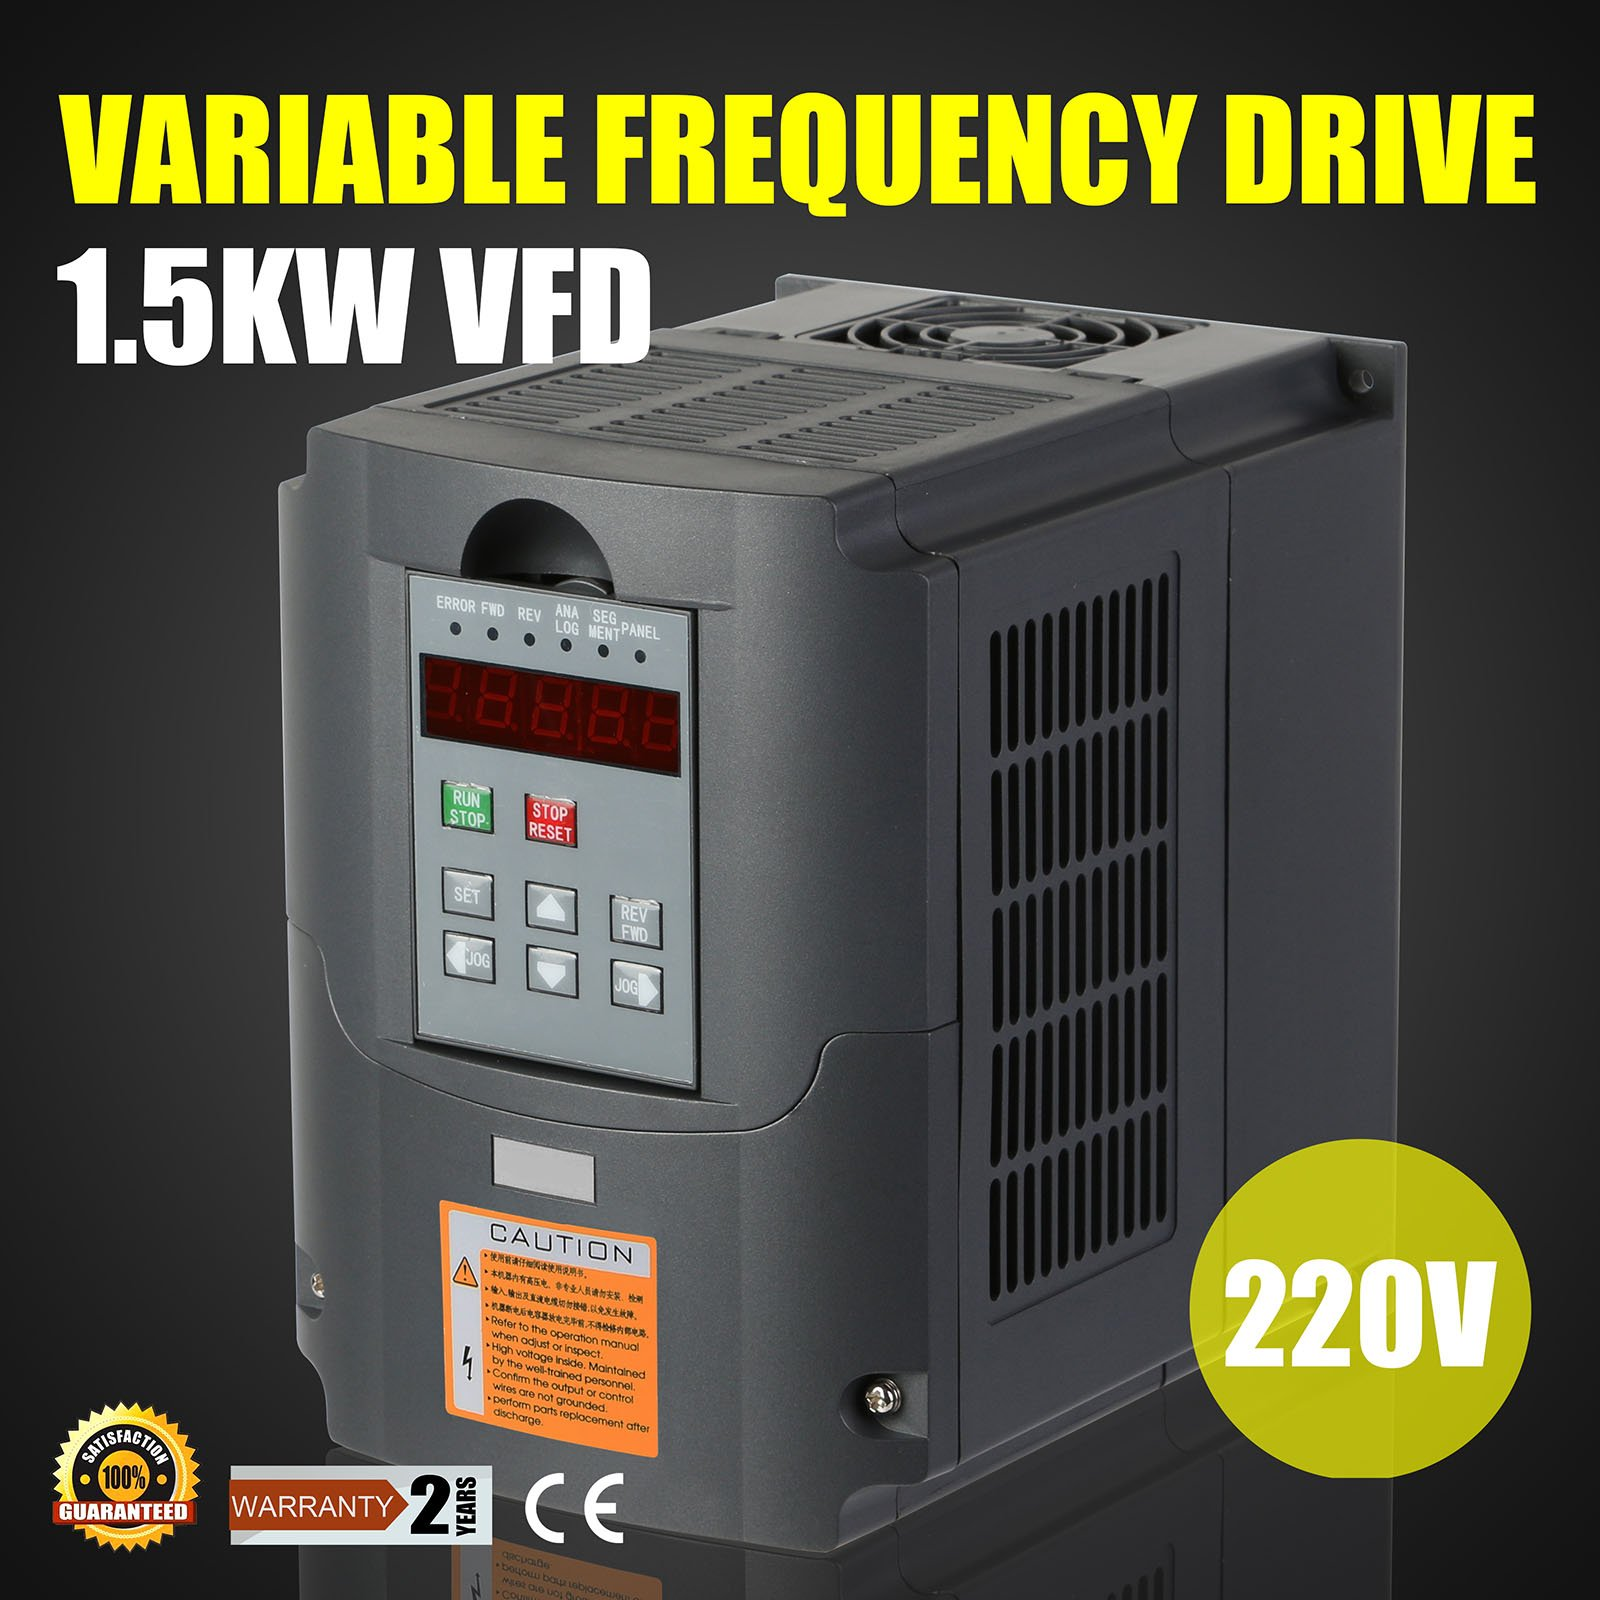 Vfd Drive Drives Wiring Diagram Cncshop Inverter 15kw 2hp For Spindle Motor Speed Control